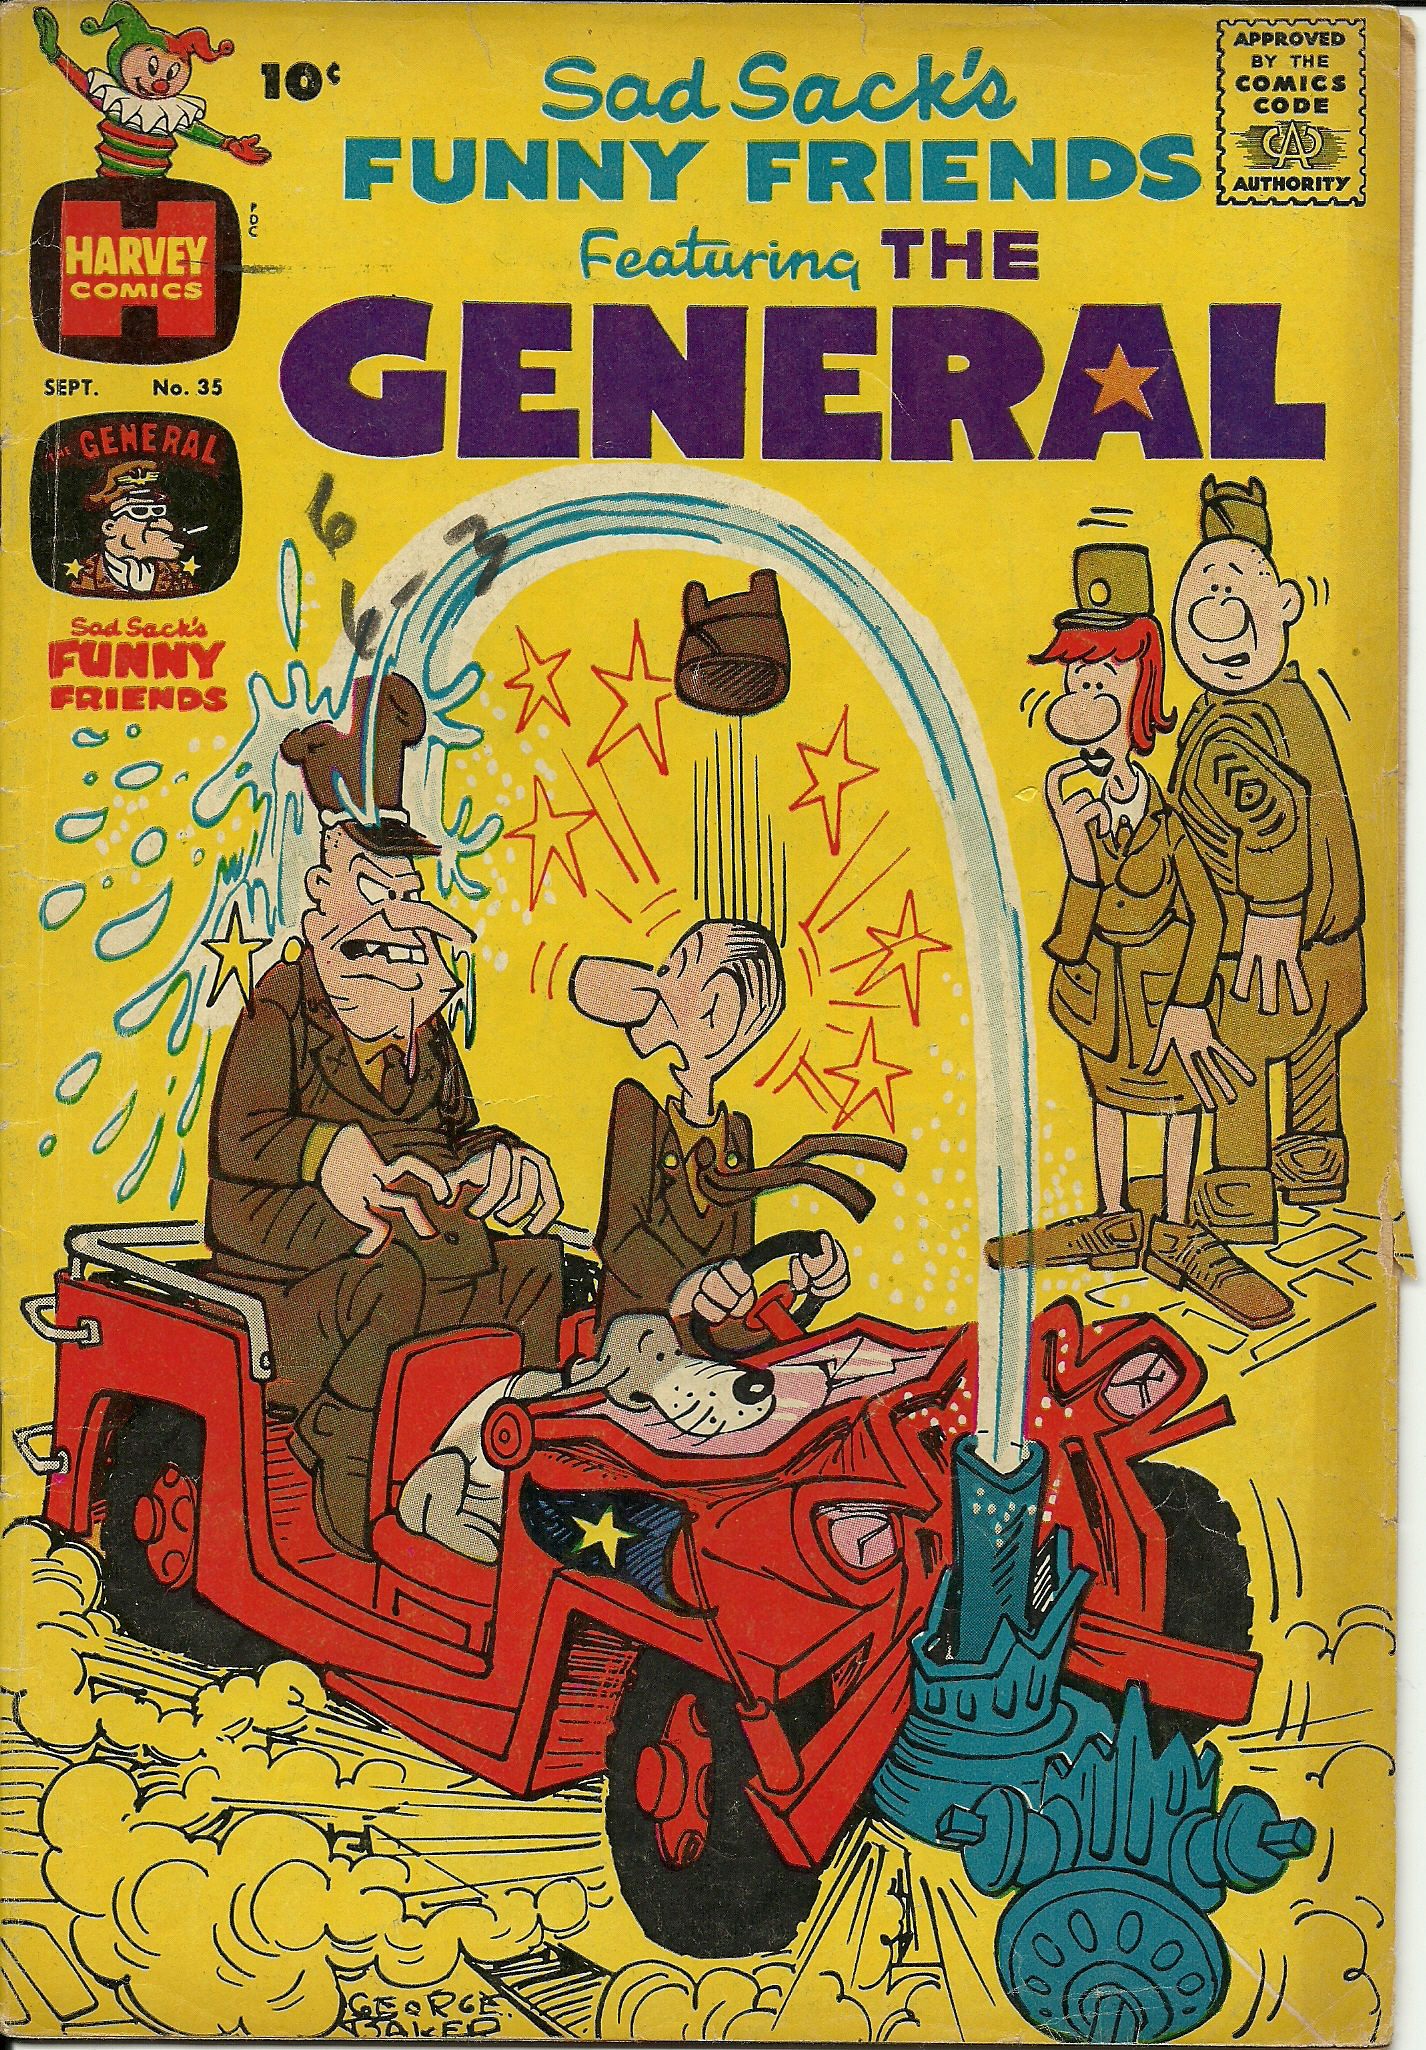 Sad Sack S Funny Friends Featuring The General Vol 1 No 35 September 1961 In Good Condition